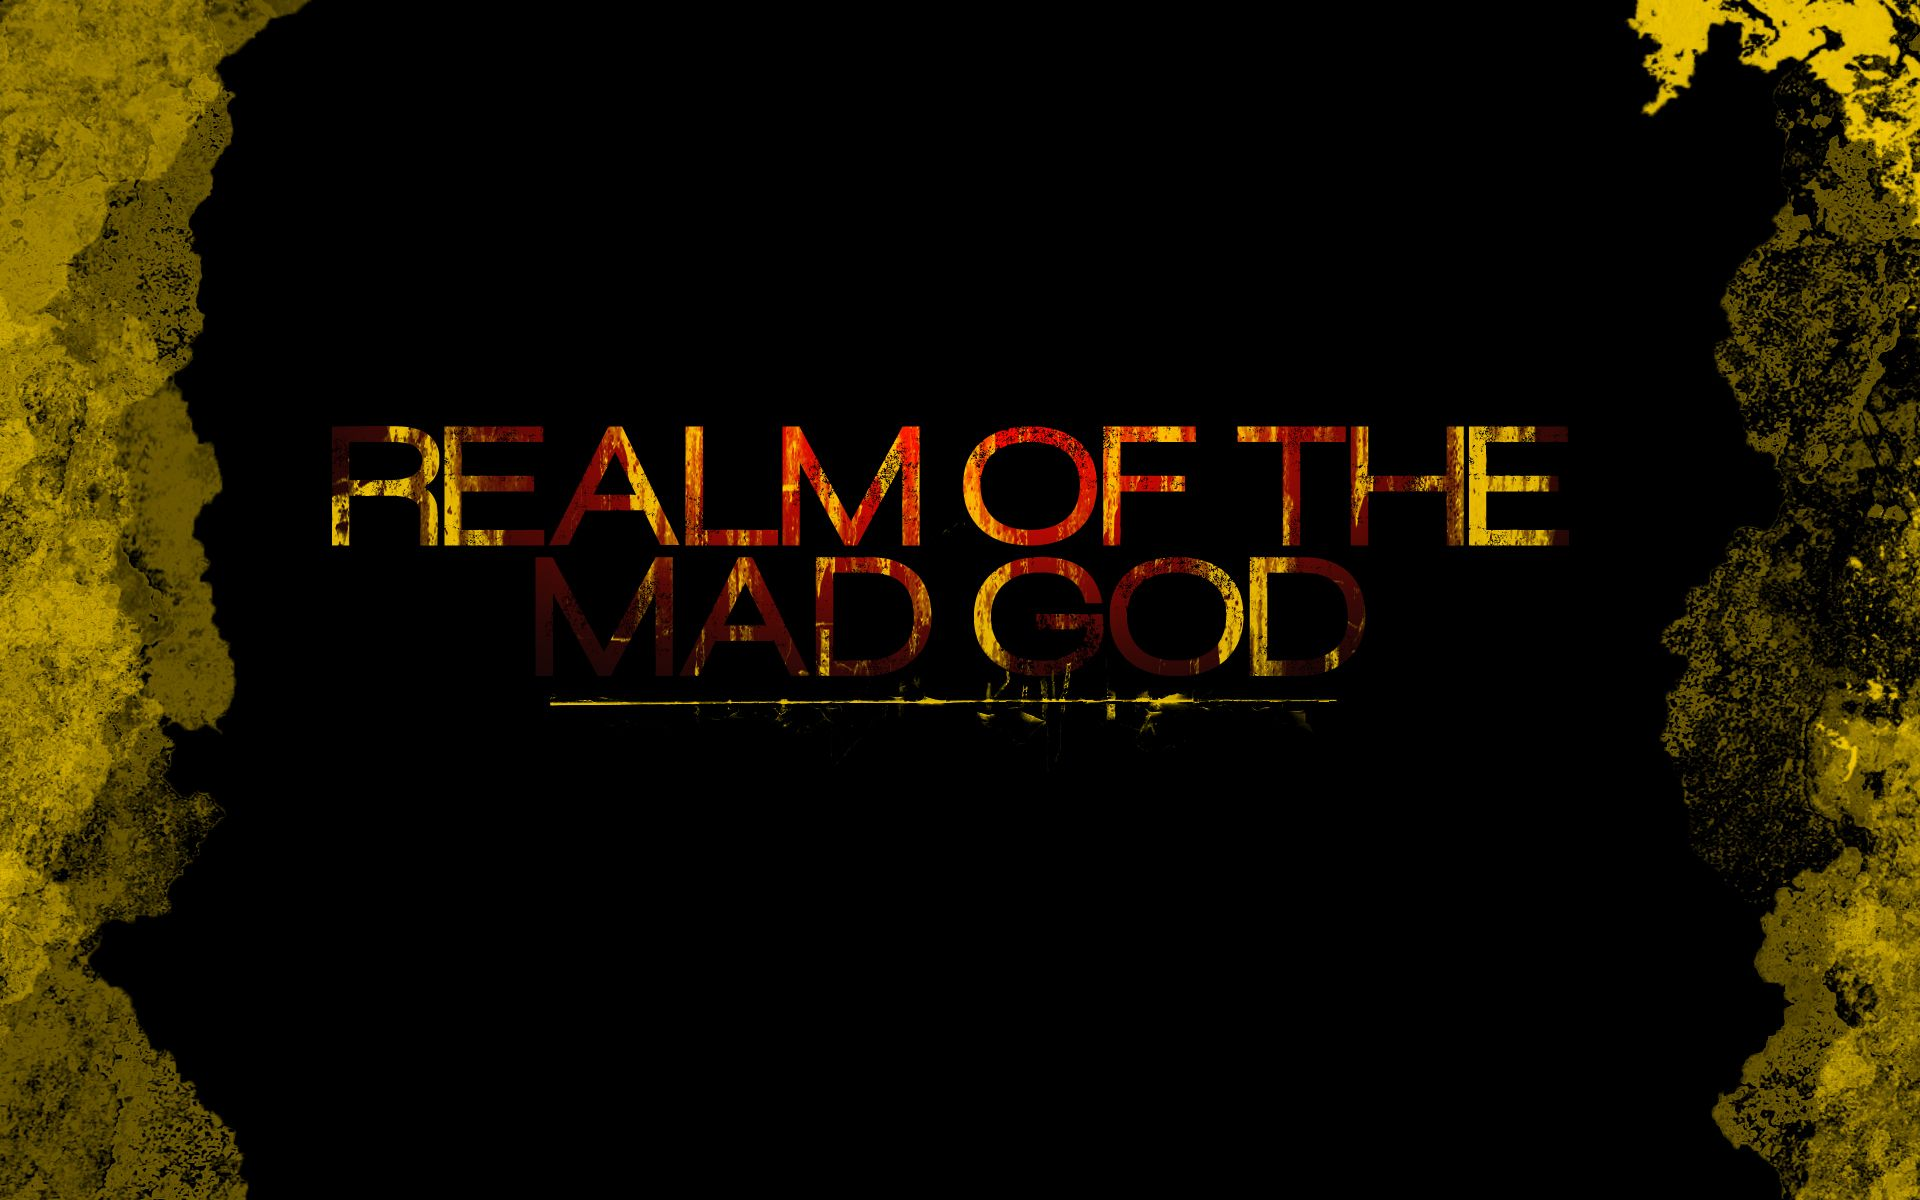 Realm Of The Mad God Wallpaper Google Zoeken Realm Of The Mad God